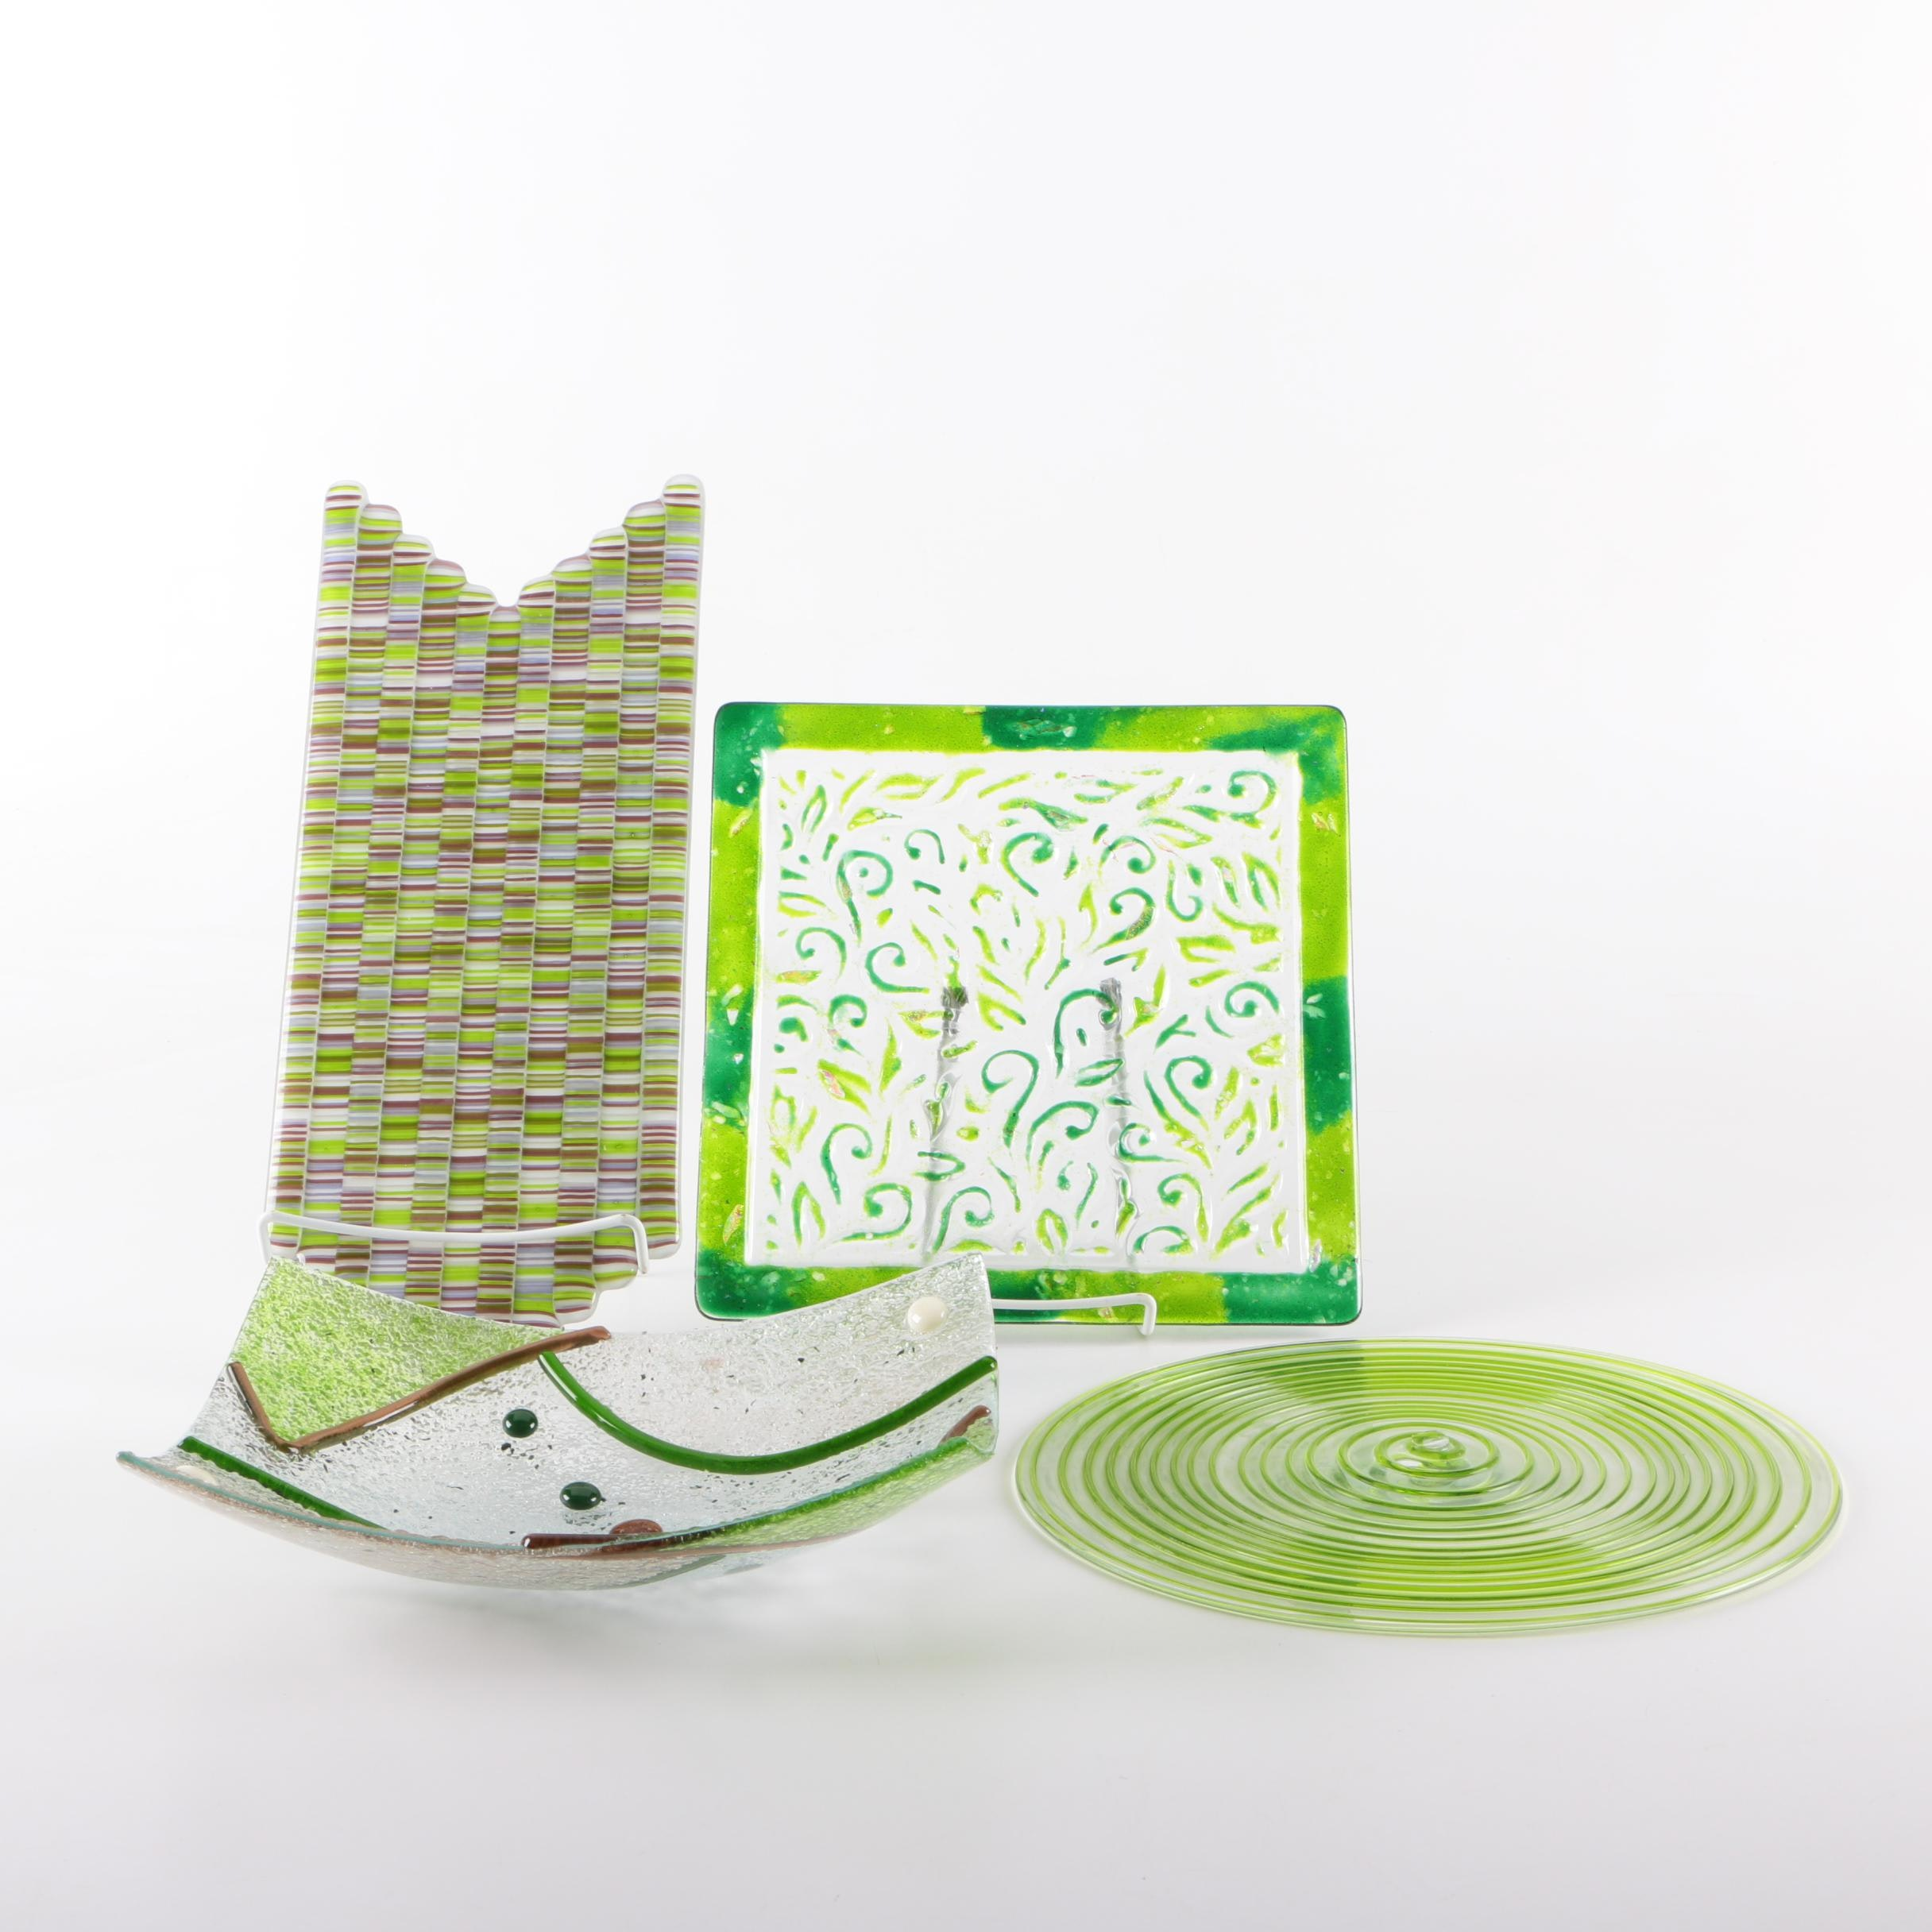 Green Art Glass Plates and Bowl